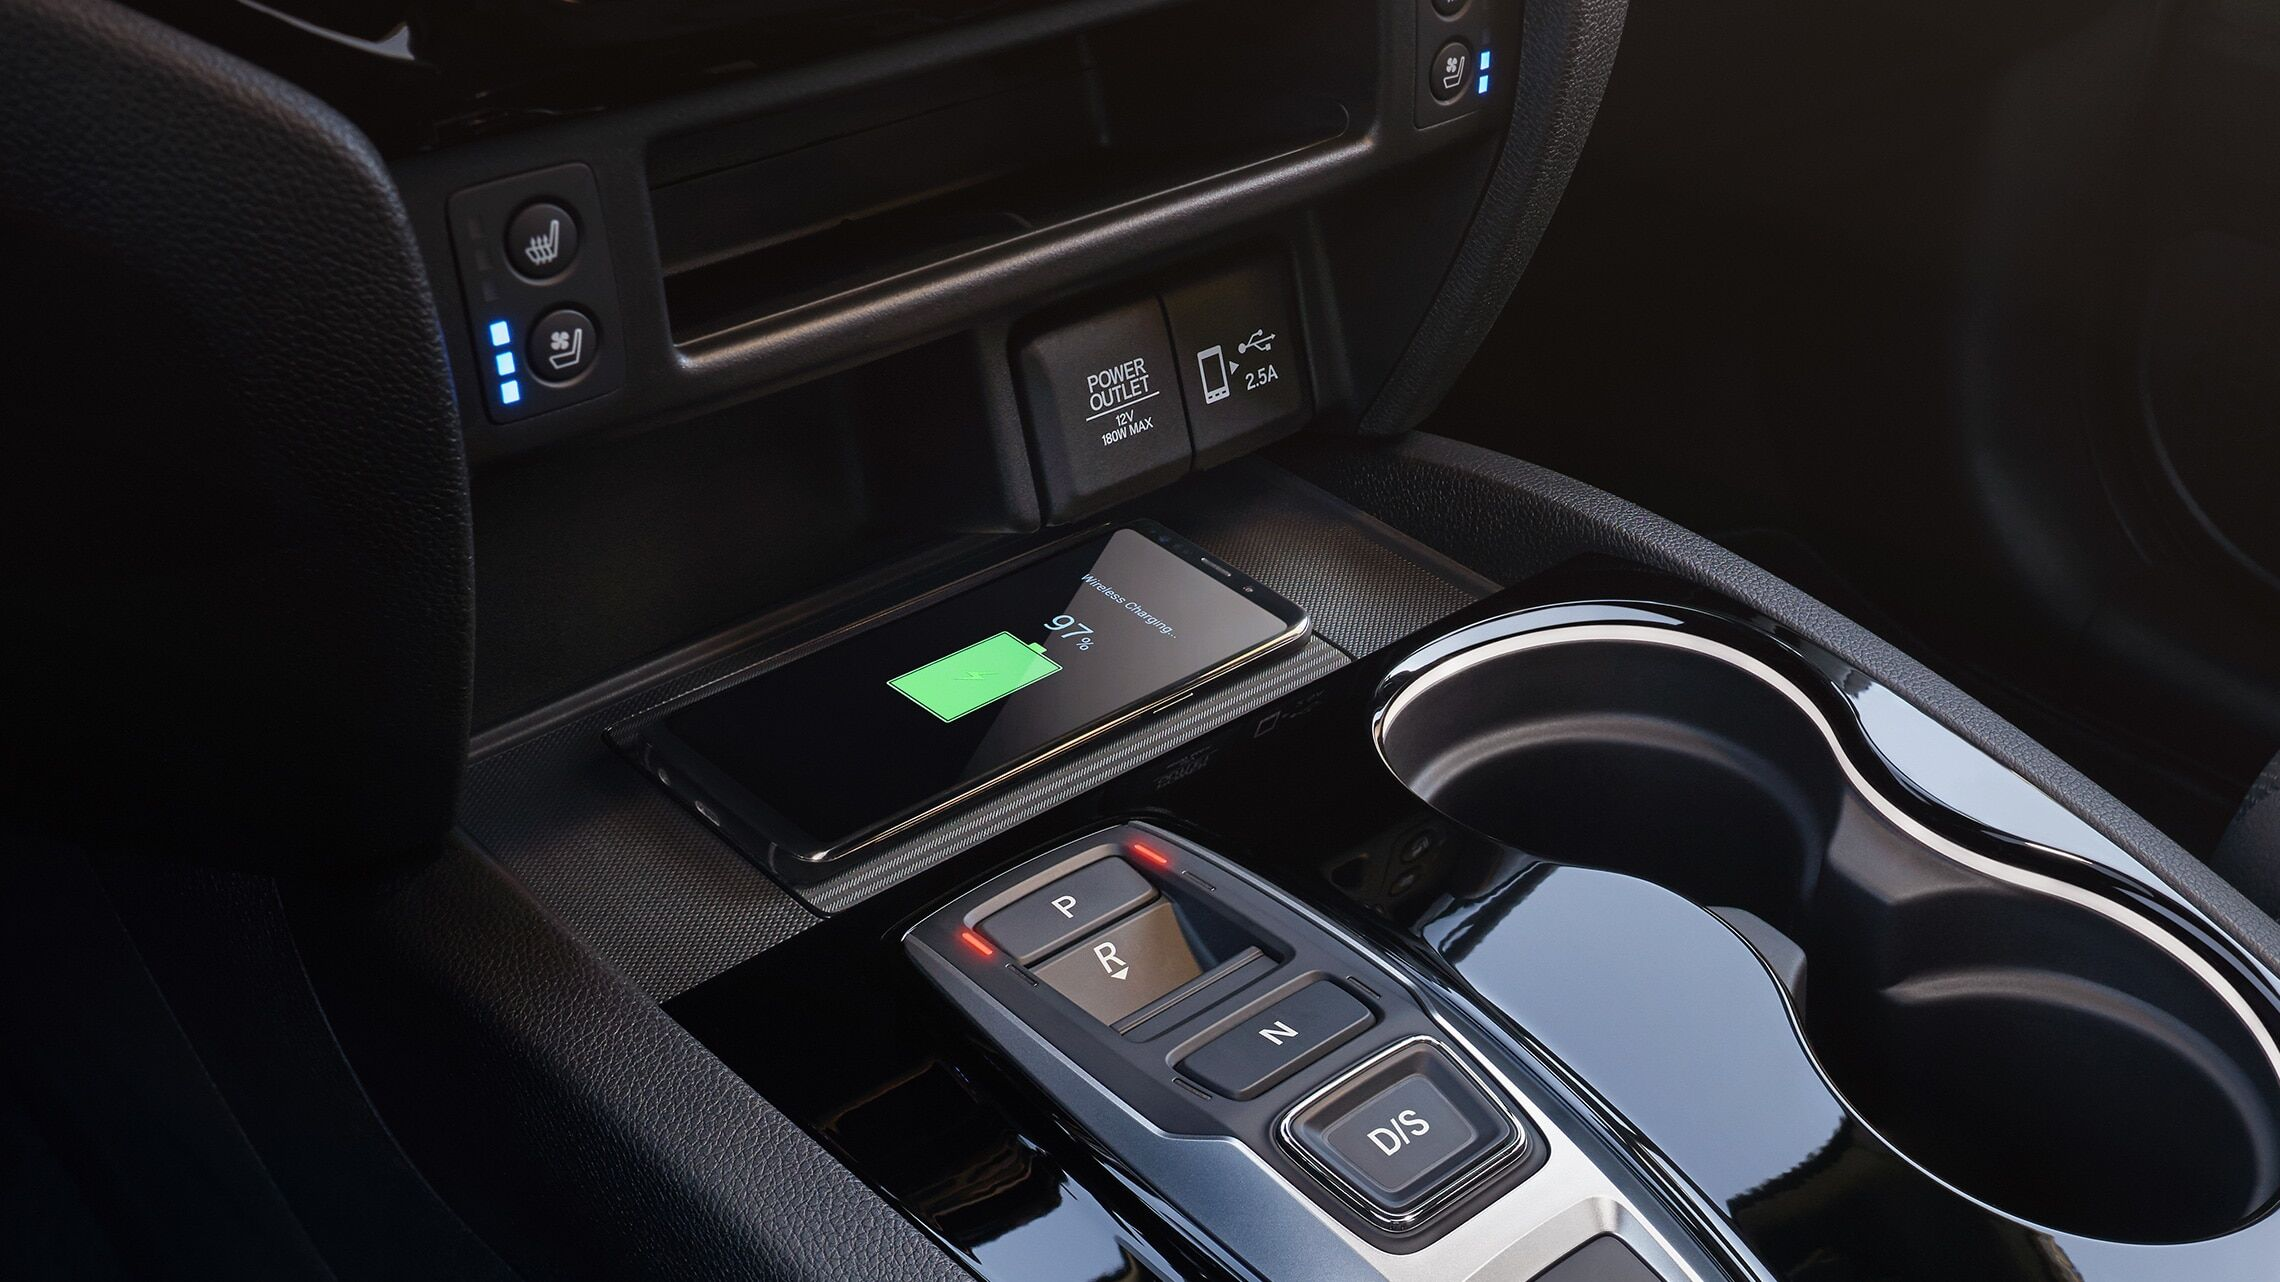 Honda Passport's wireless phone charger